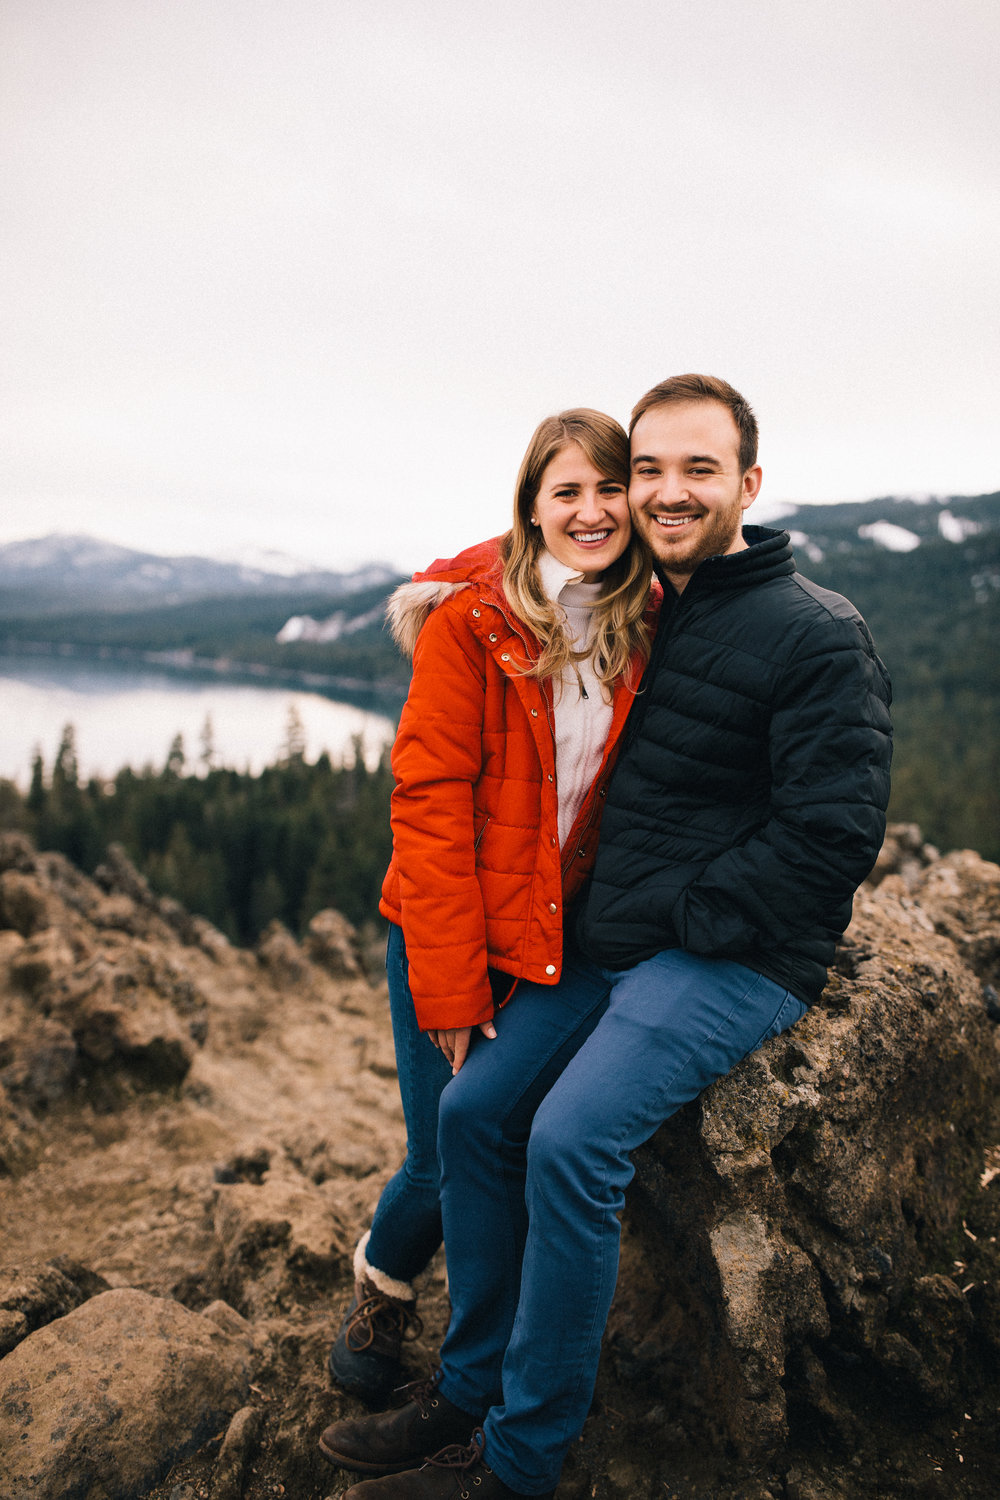 2018_01_01 Tahoe Trip 2018 Edited Full Resolution 0064.jpg